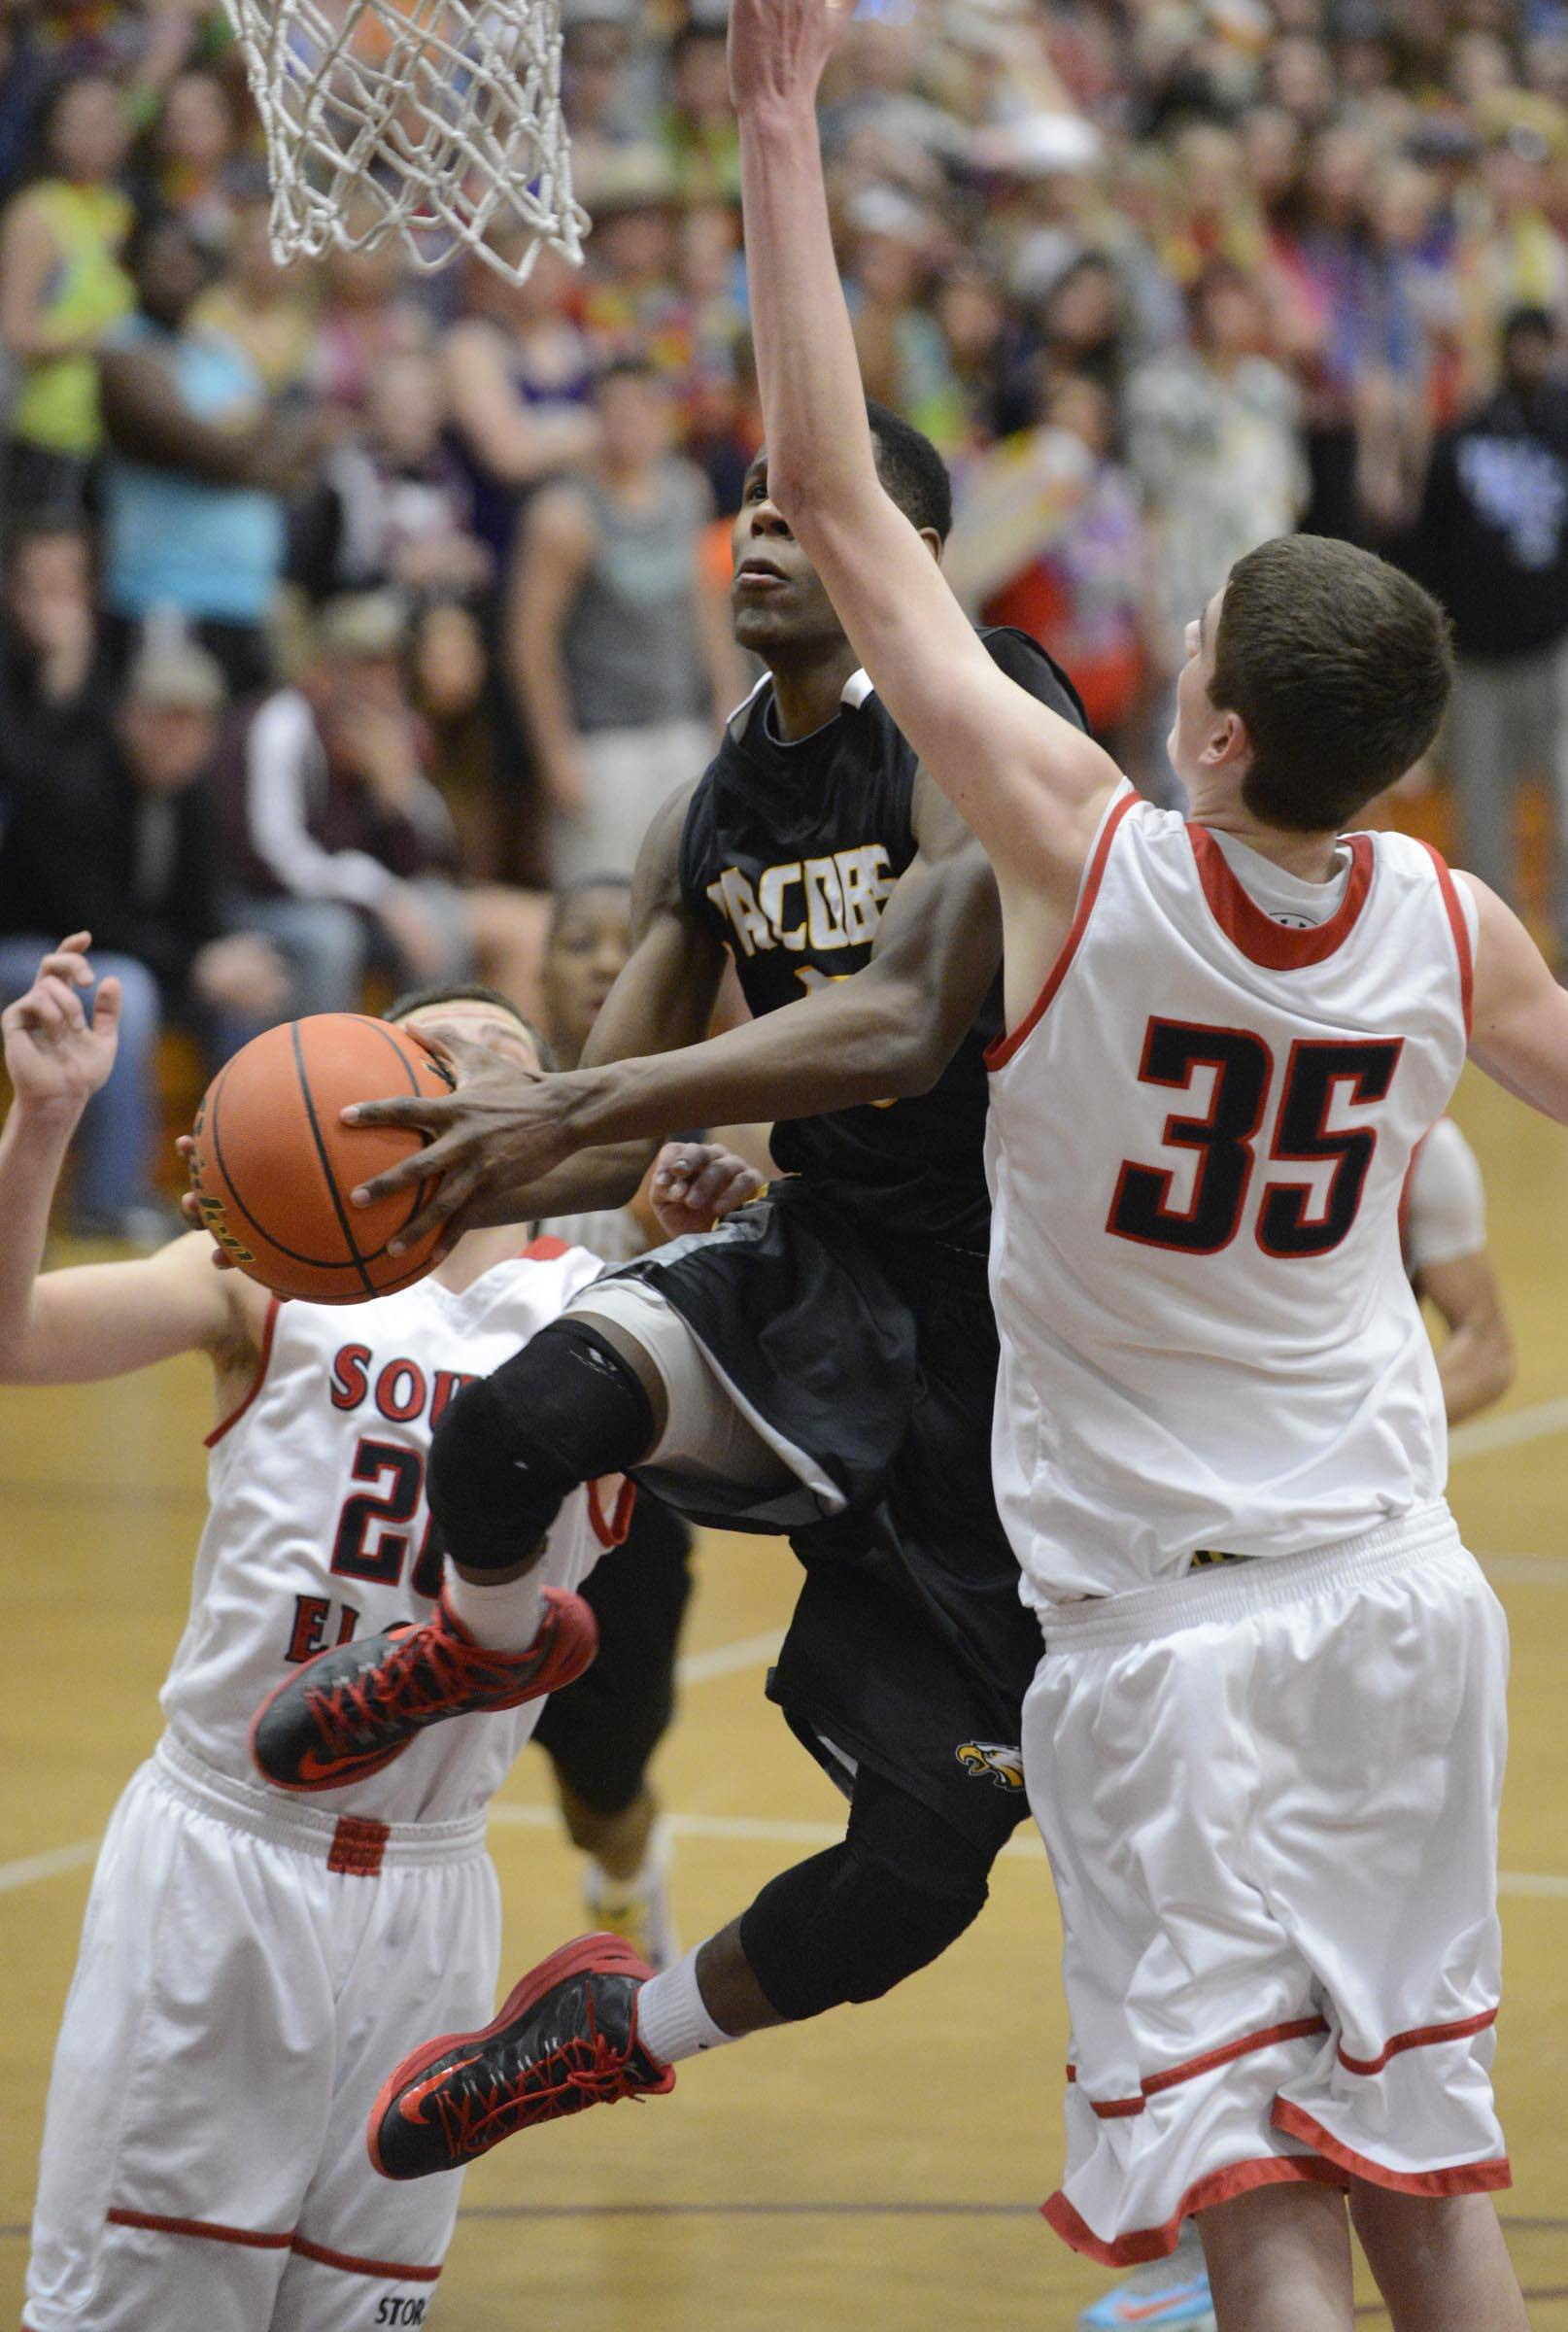 Images from the Jacobs vs. South Elgin boys sectional semifinal game Wednesday, March 12, 2014 in Elgin.